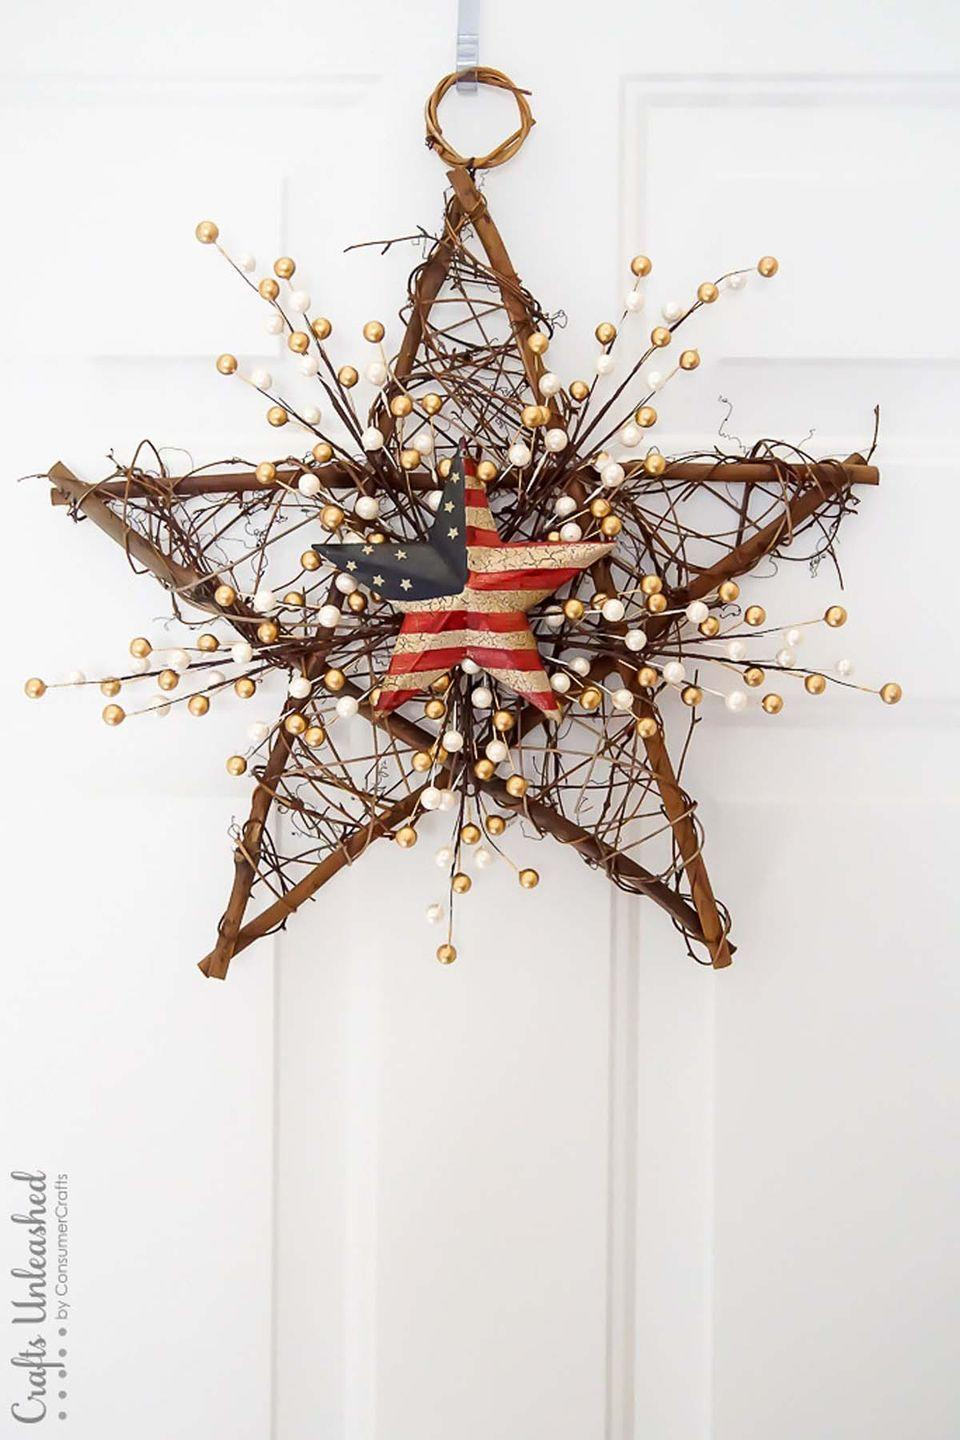 """<p>For a simple 4th of July decoration, update a grapevine star wreath with metallic pearls and a barn flag star.</p><p><strong>Get the tutorial at <a href=""""http://blog.consumercrafts.com/decor-home/patriotic-diy-grapevine-wreath/"""" rel=""""nofollow noopener"""" target=""""_blank"""" data-ylk=""""slk:Crafts Unleashed"""" class=""""link rapid-noclick-resp"""">Crafts Unleashed</a>. </strong></p><p><strong><a class=""""link rapid-noclick-resp"""" href=""""https://www.amazon.com/Ougual-Natural-Wicker-Rattan-Decoration/dp/B07KSZHKLN/ref=sr_1_6?tag=syn-yahoo-20&ascsubtag=%5Bartid%7C10050.g.4464%5Bsrc%7Cyahoo-us"""" rel=""""nofollow noopener"""" target=""""_blank"""" data-ylk=""""slk:SHOP GRAPEVINE STAR WREATHS"""">SHOP GRAPEVINE STAR WREATHS</a></strong></p>"""